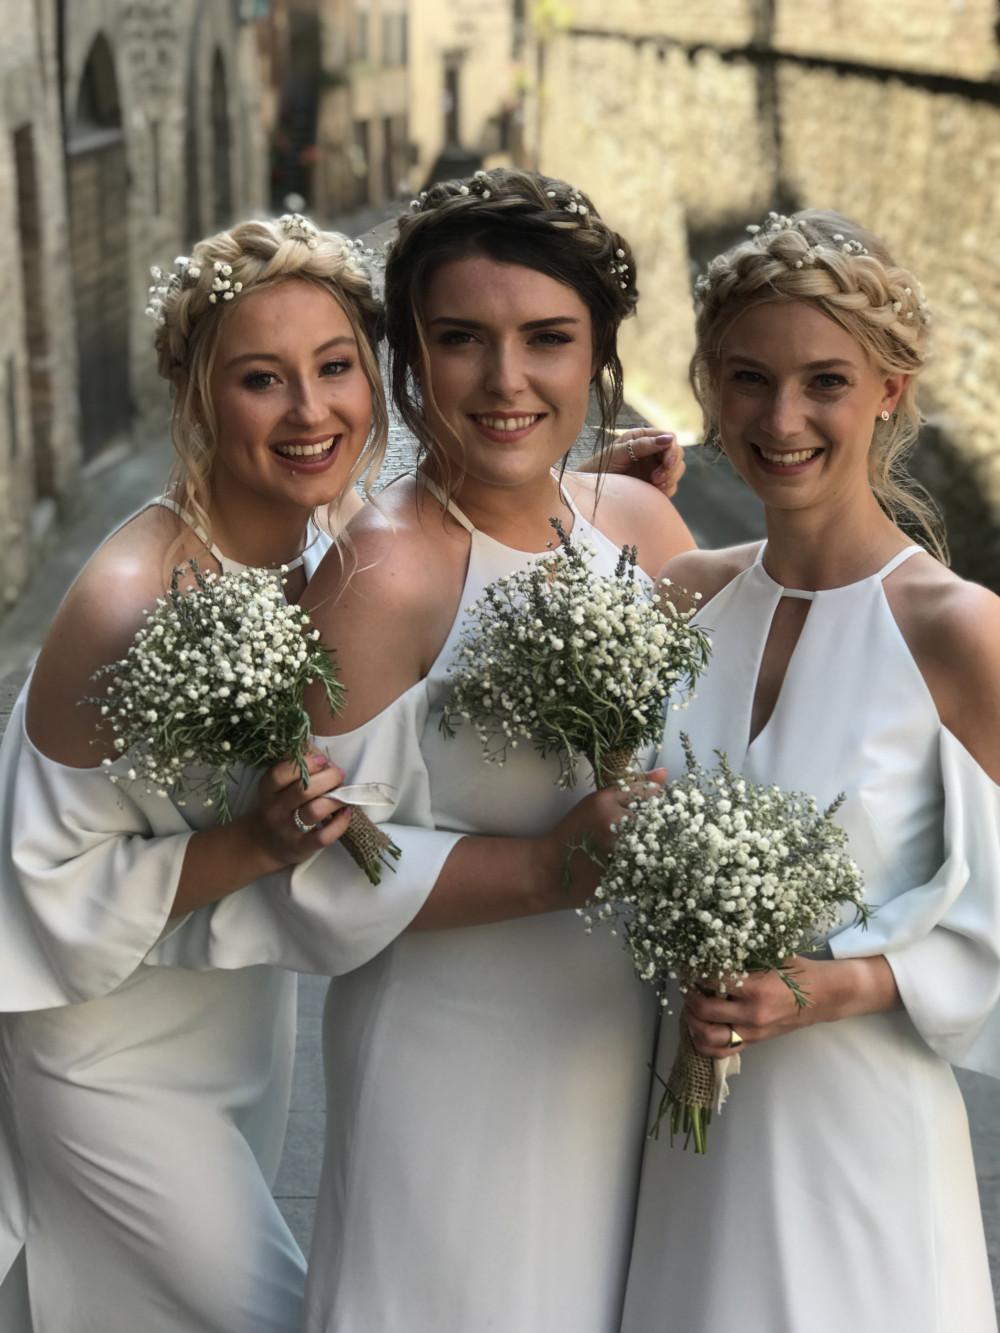 Gorgeous bridesmaids at destination wedding in Umbria Italy - Make Me Bridal Artist: Beautiful Hair 4 Weddings. Photography by: Myself. #boho #bridesmaidhair #milkmaidbraids #destinationwedding